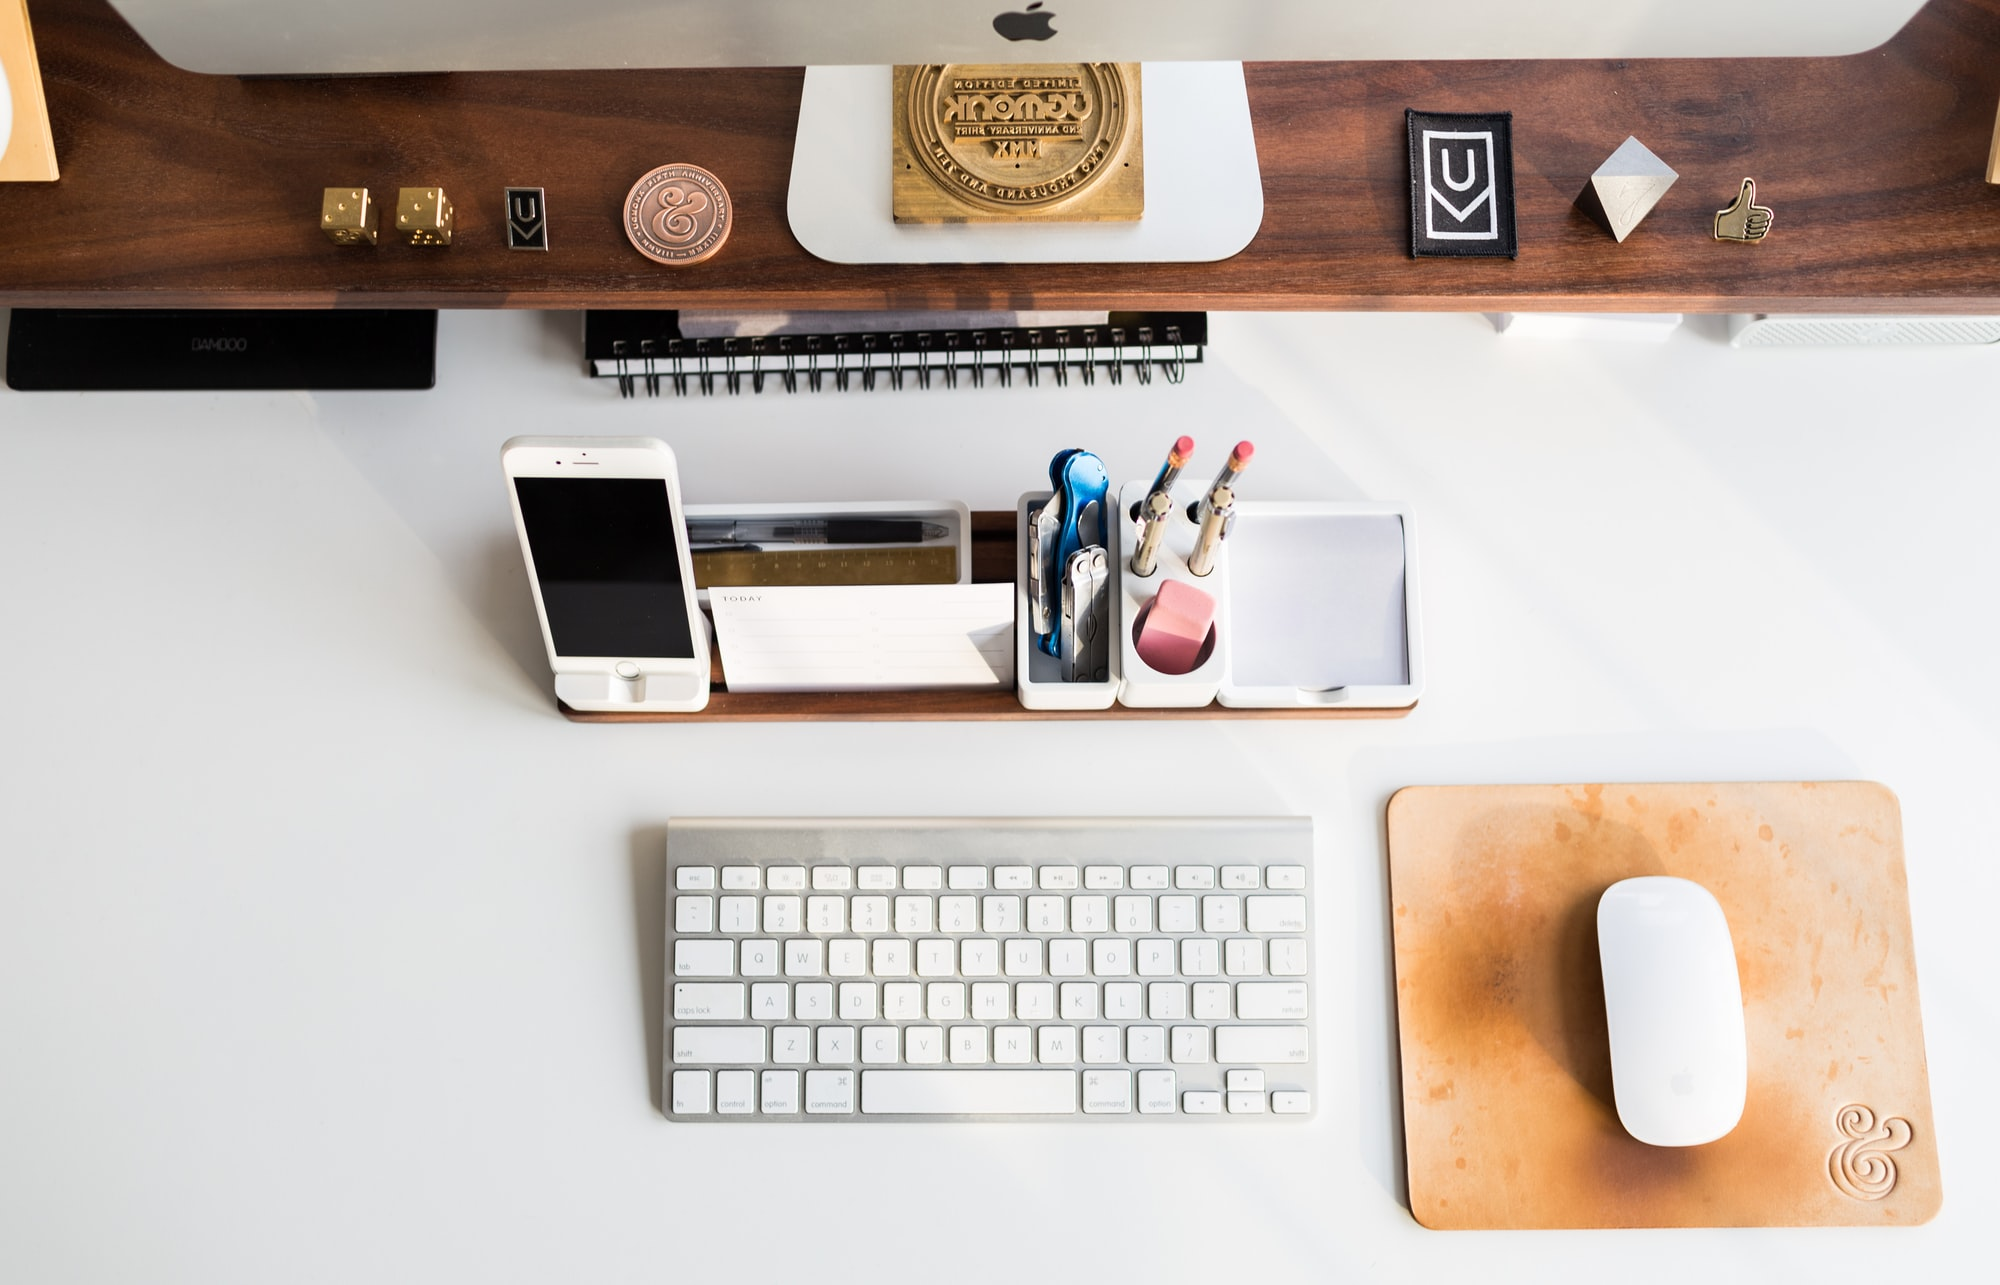 Gather cuts the clutter of small desk items, acts as a central home base for your most used items, and keeps everything neatly in place. Discover more at https://www.kickstarter.com/projects/ugmonk/gather-the-minimal-modular-organizer-that-cuts-clu